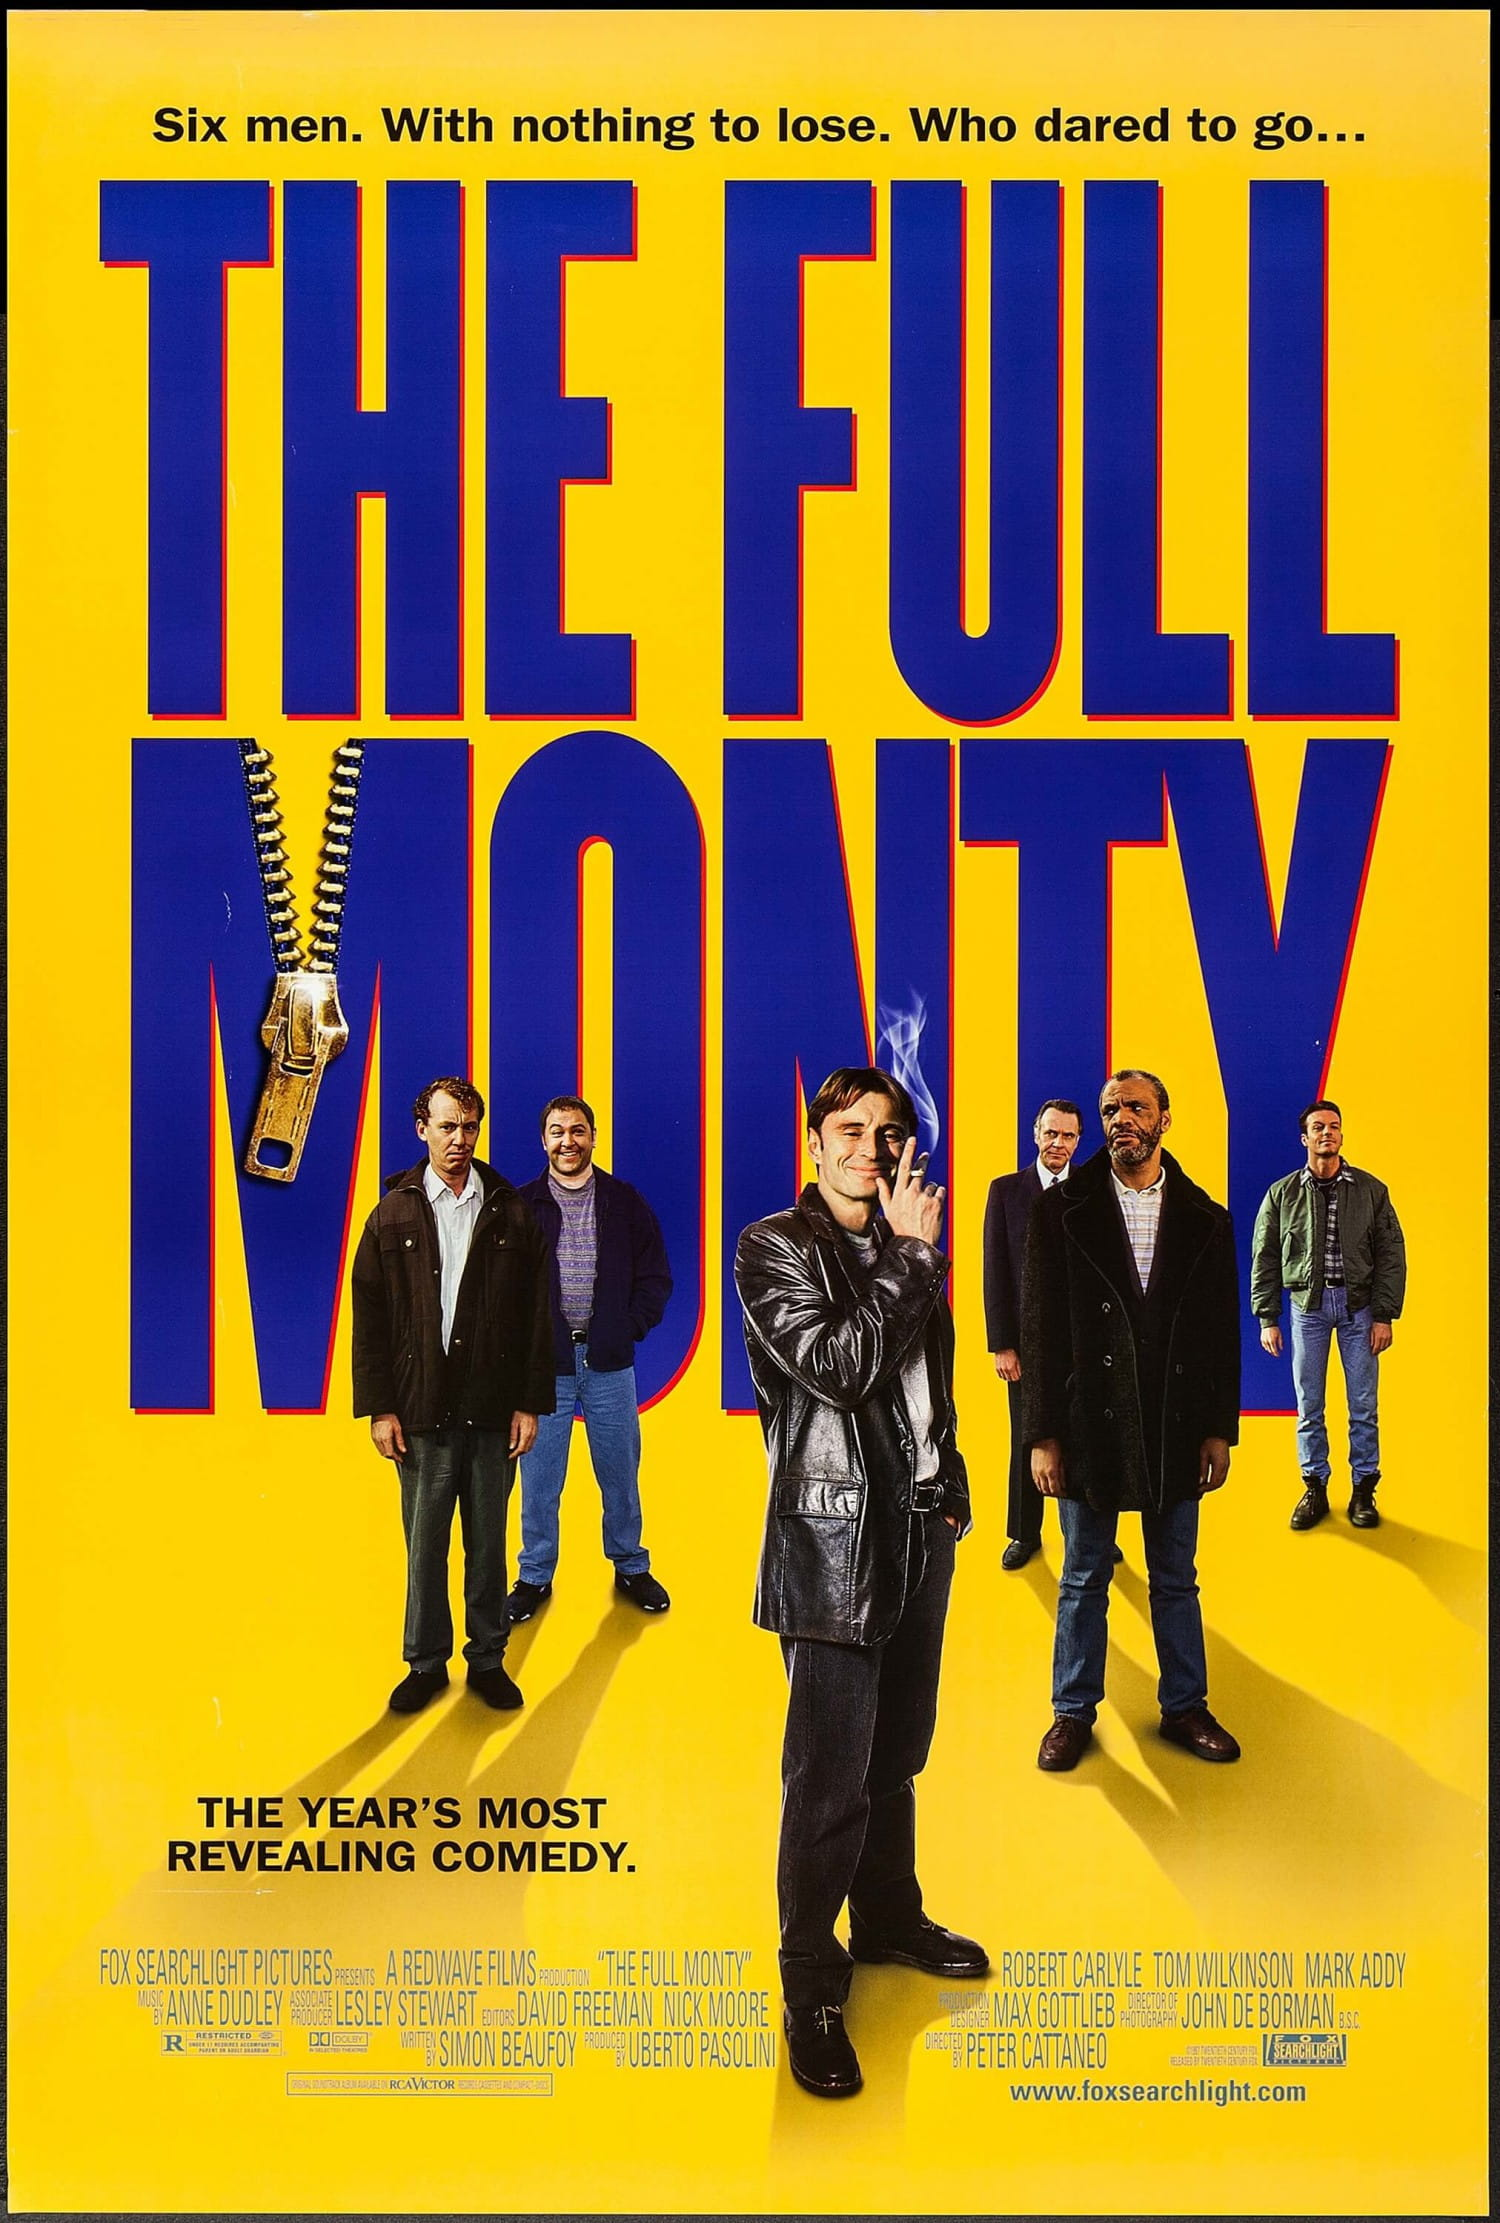 Robert Carlyle and the Full Monty